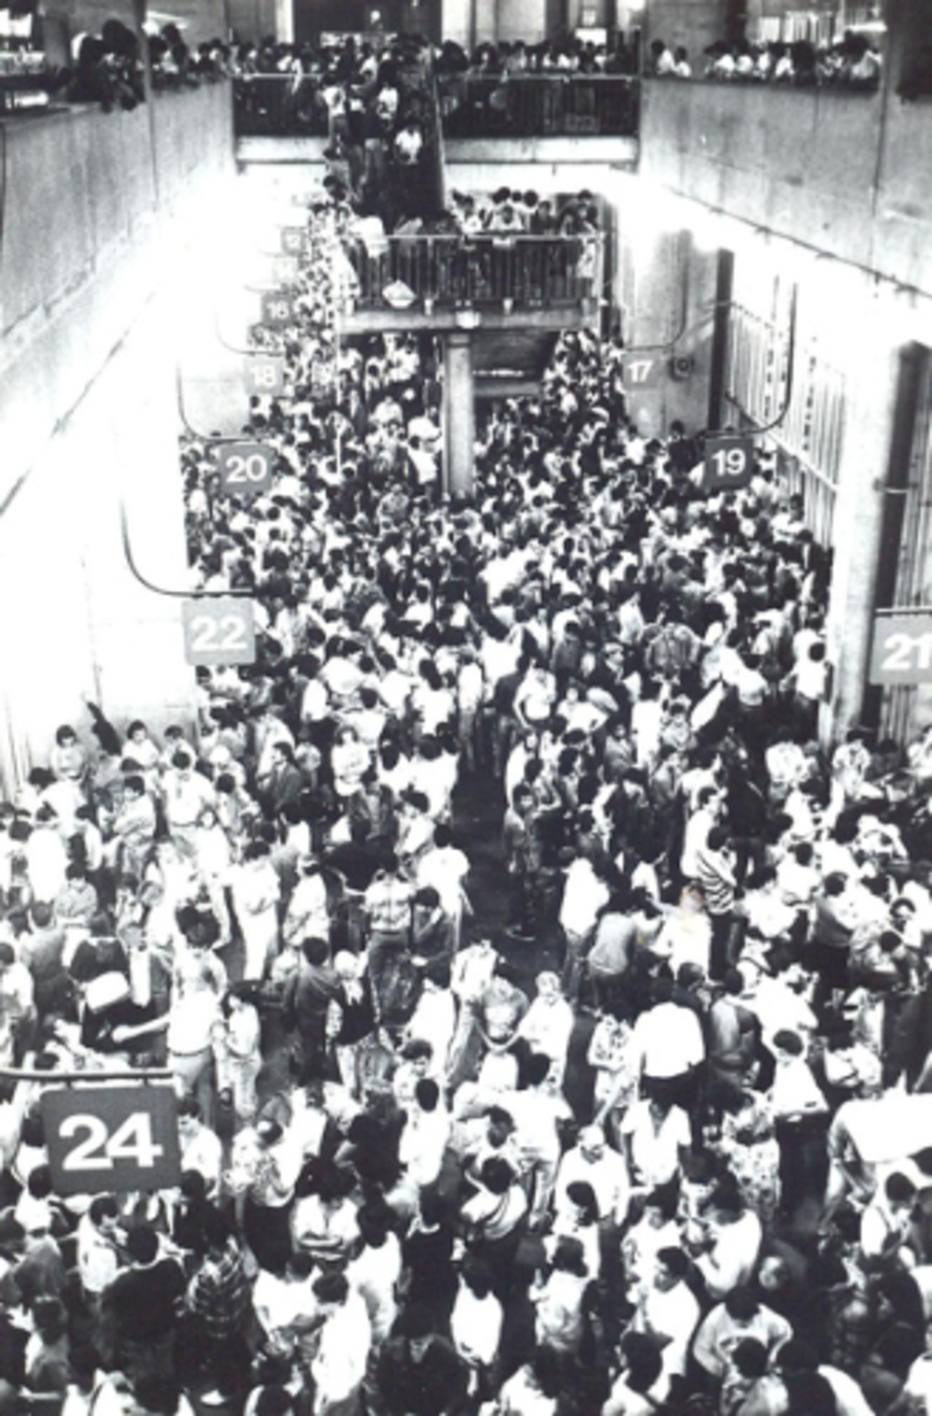 Black and white photo, from the top of one of the platforms of the Bus Terminal, crowded by thousands of people.